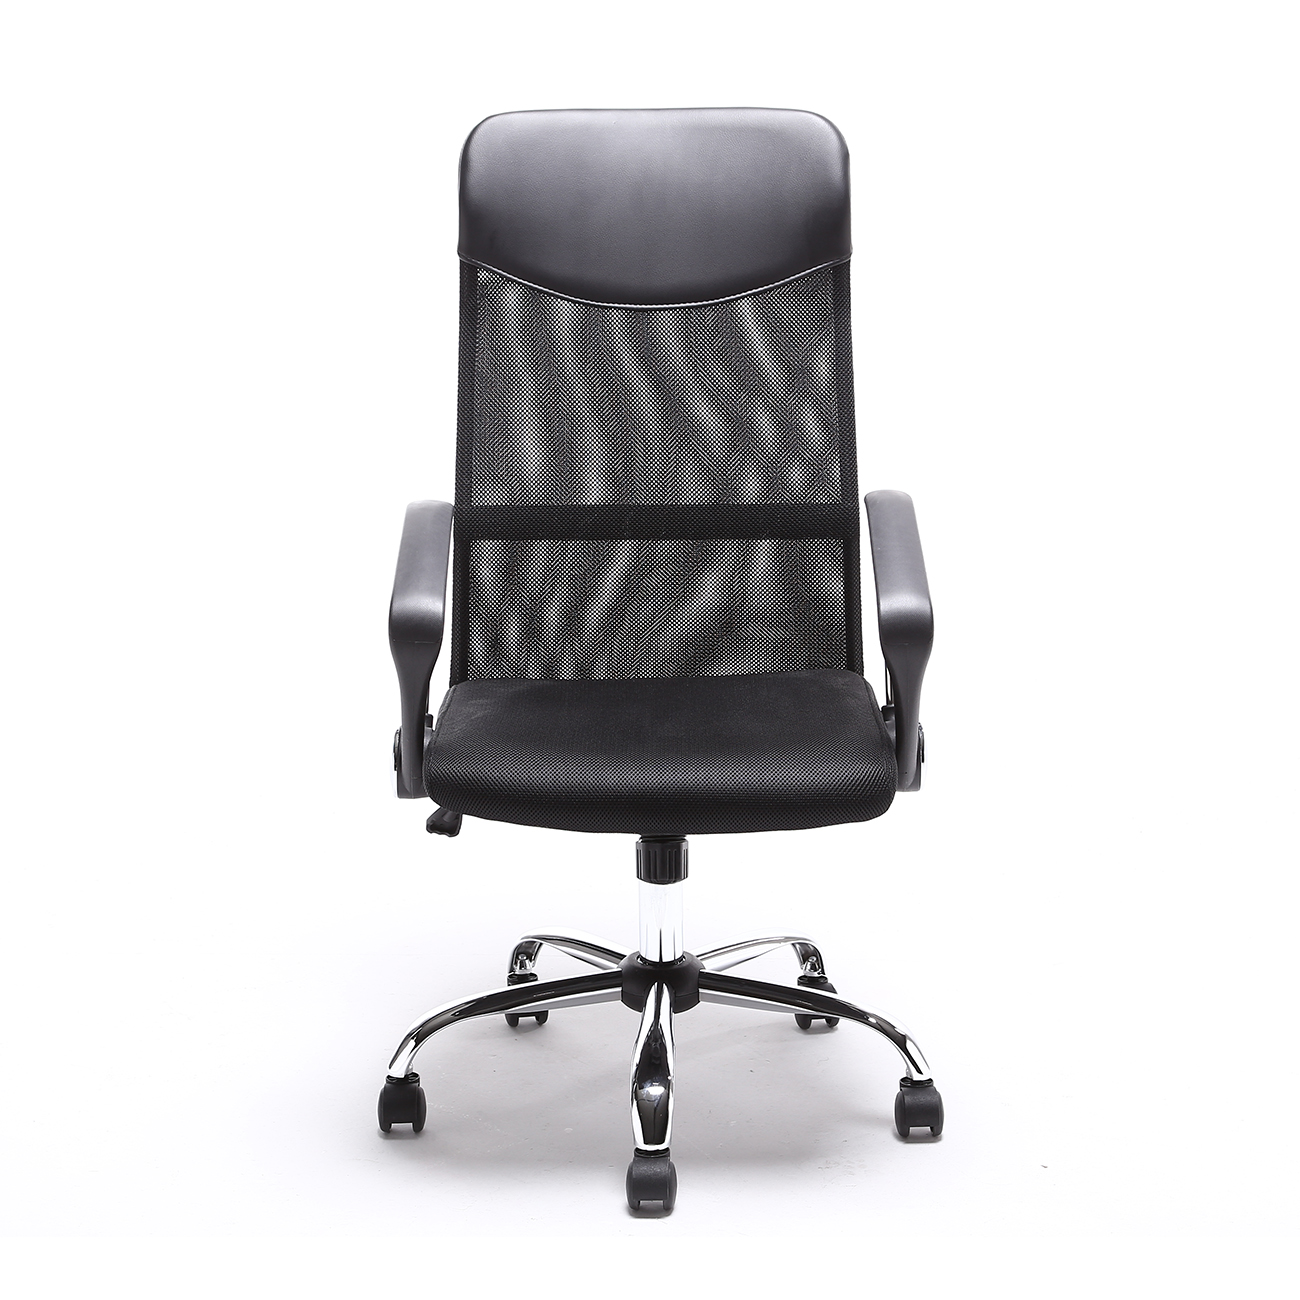 Mesh Ergonomic Office Chair Black Modern Executive Ergonomic Mesh High Back Computer